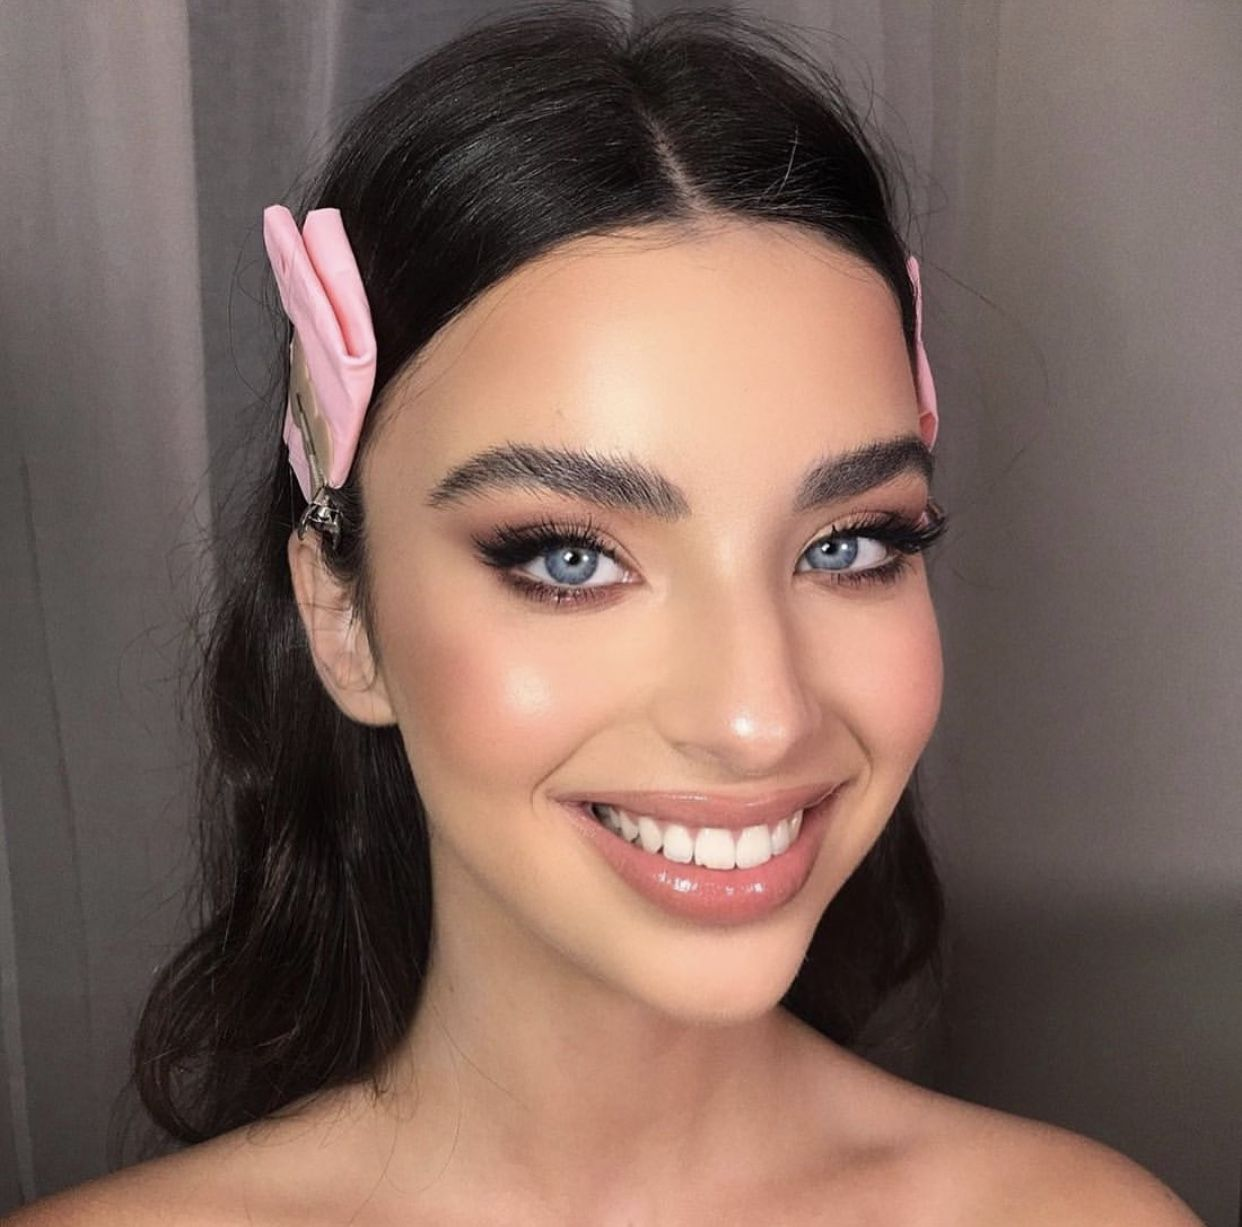 Pin by lady lala on Makeup in 2020 Sultry makeup, Bridal